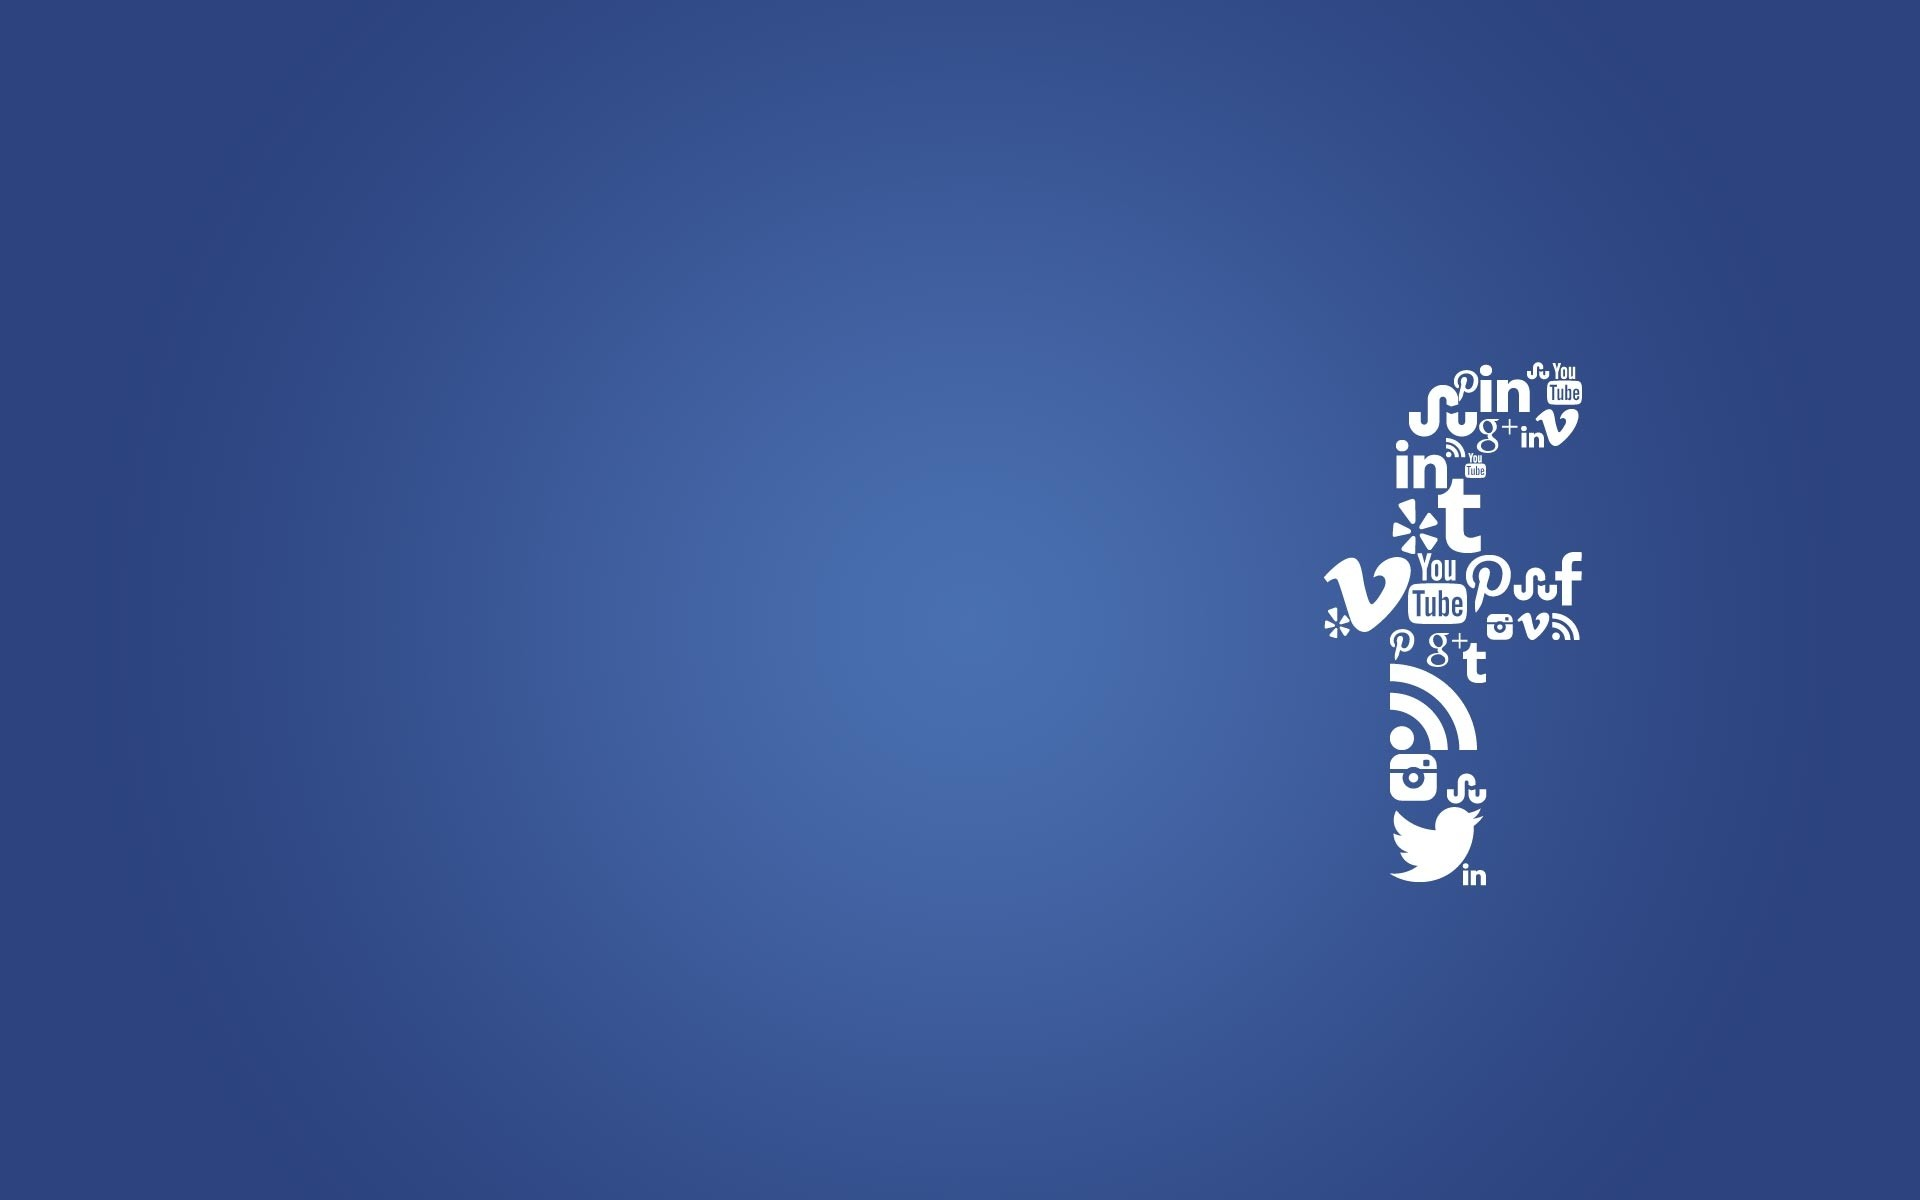 New Wallpaper for facebook background – New Wallpaper for facebook  background Download New Wallpaper for facebook